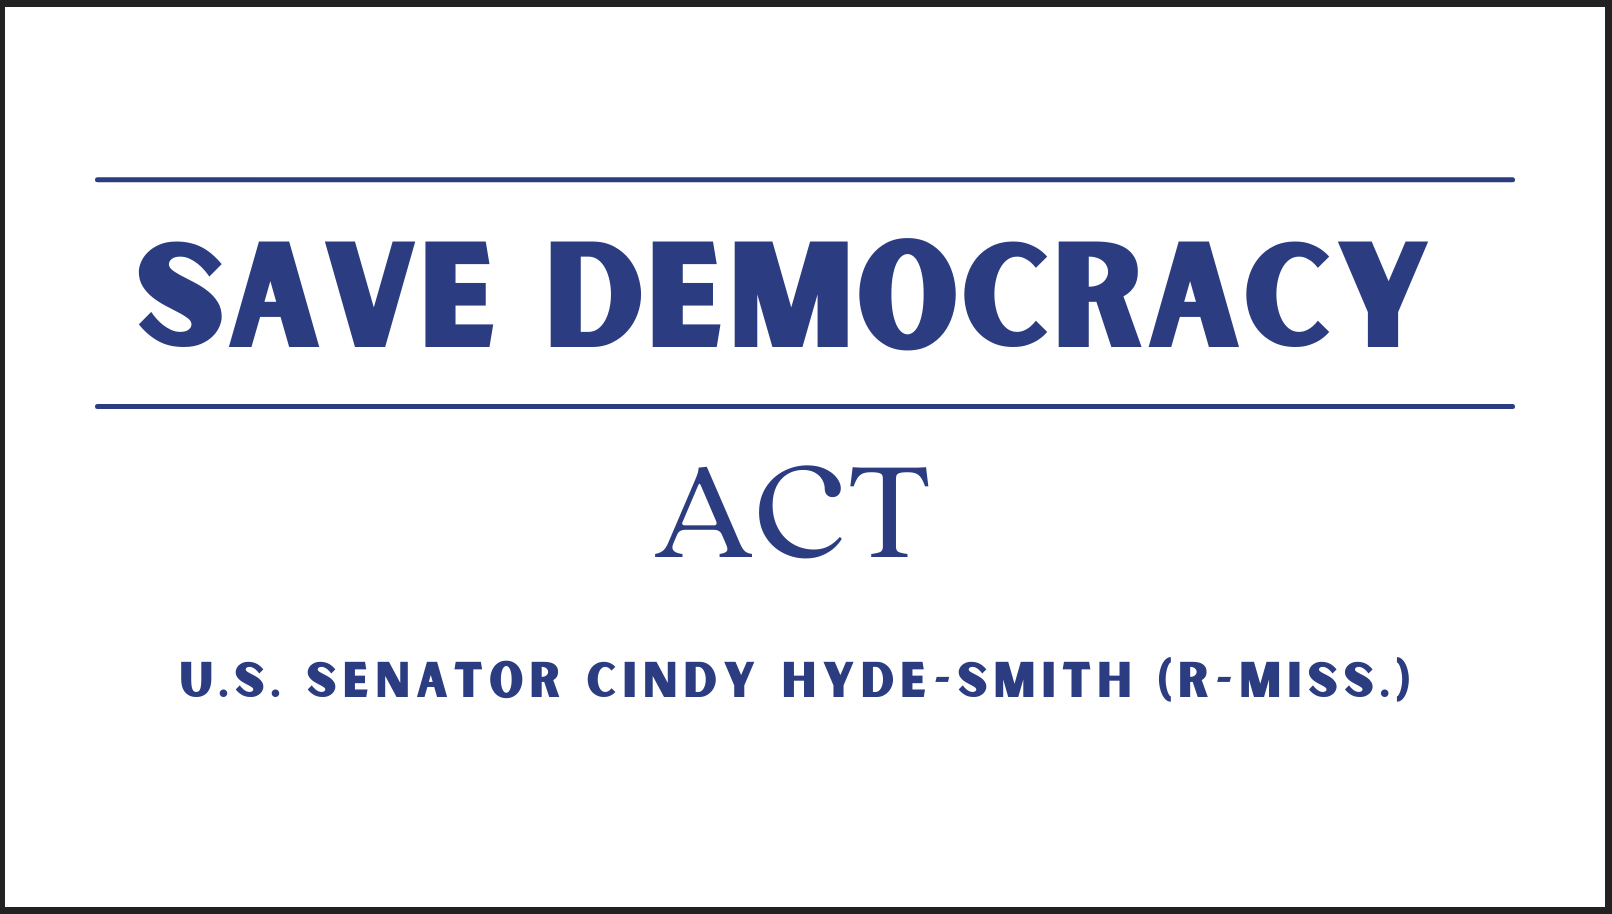 Save Democracy Act